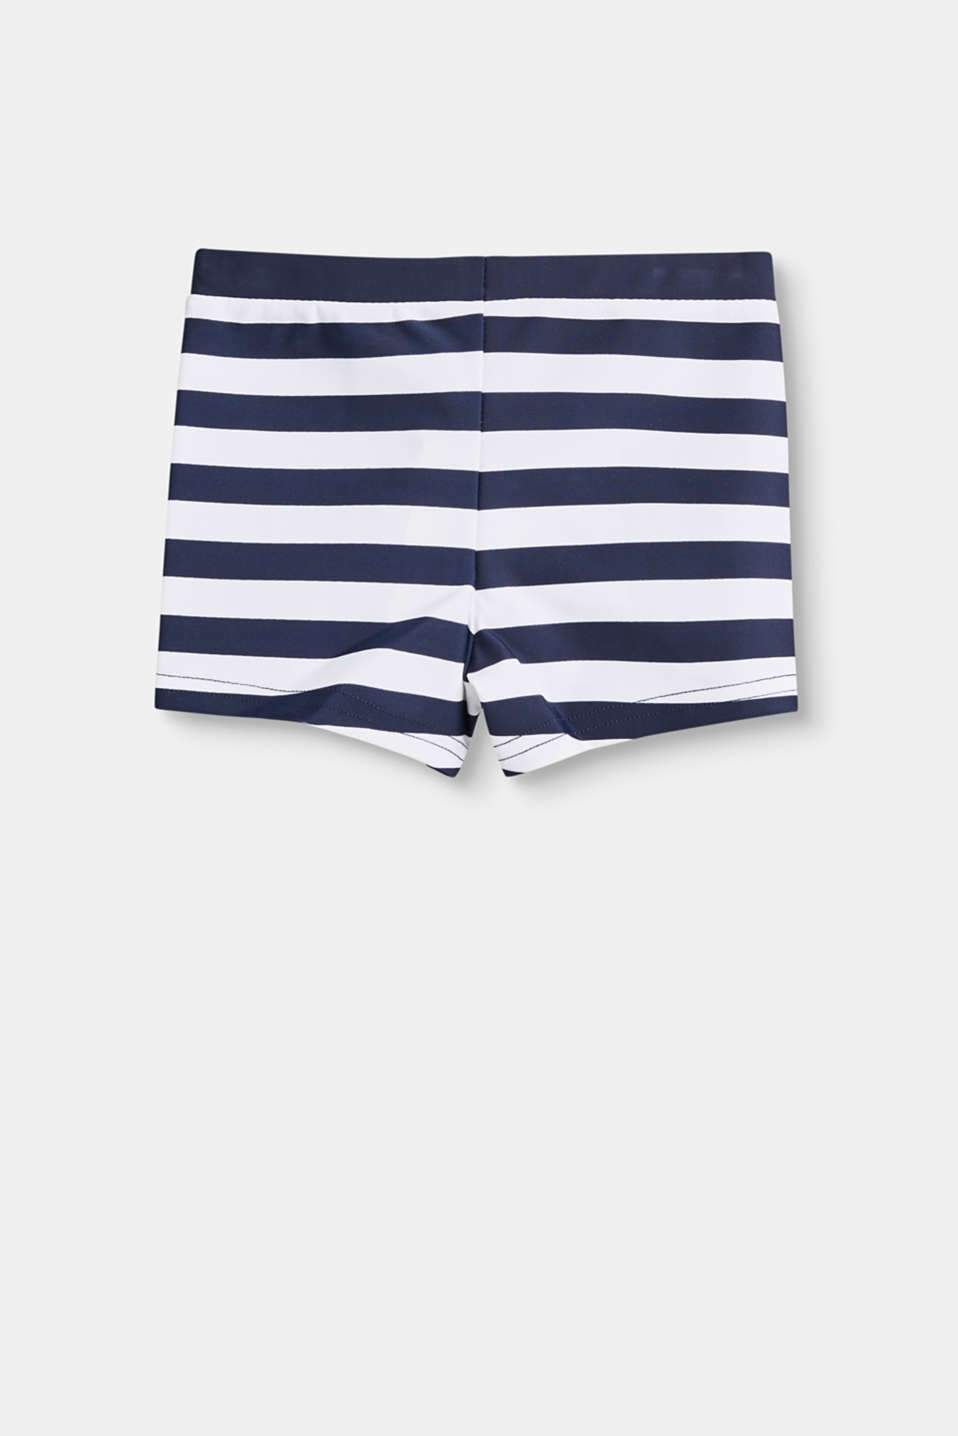 Stribede retro-badeshorts